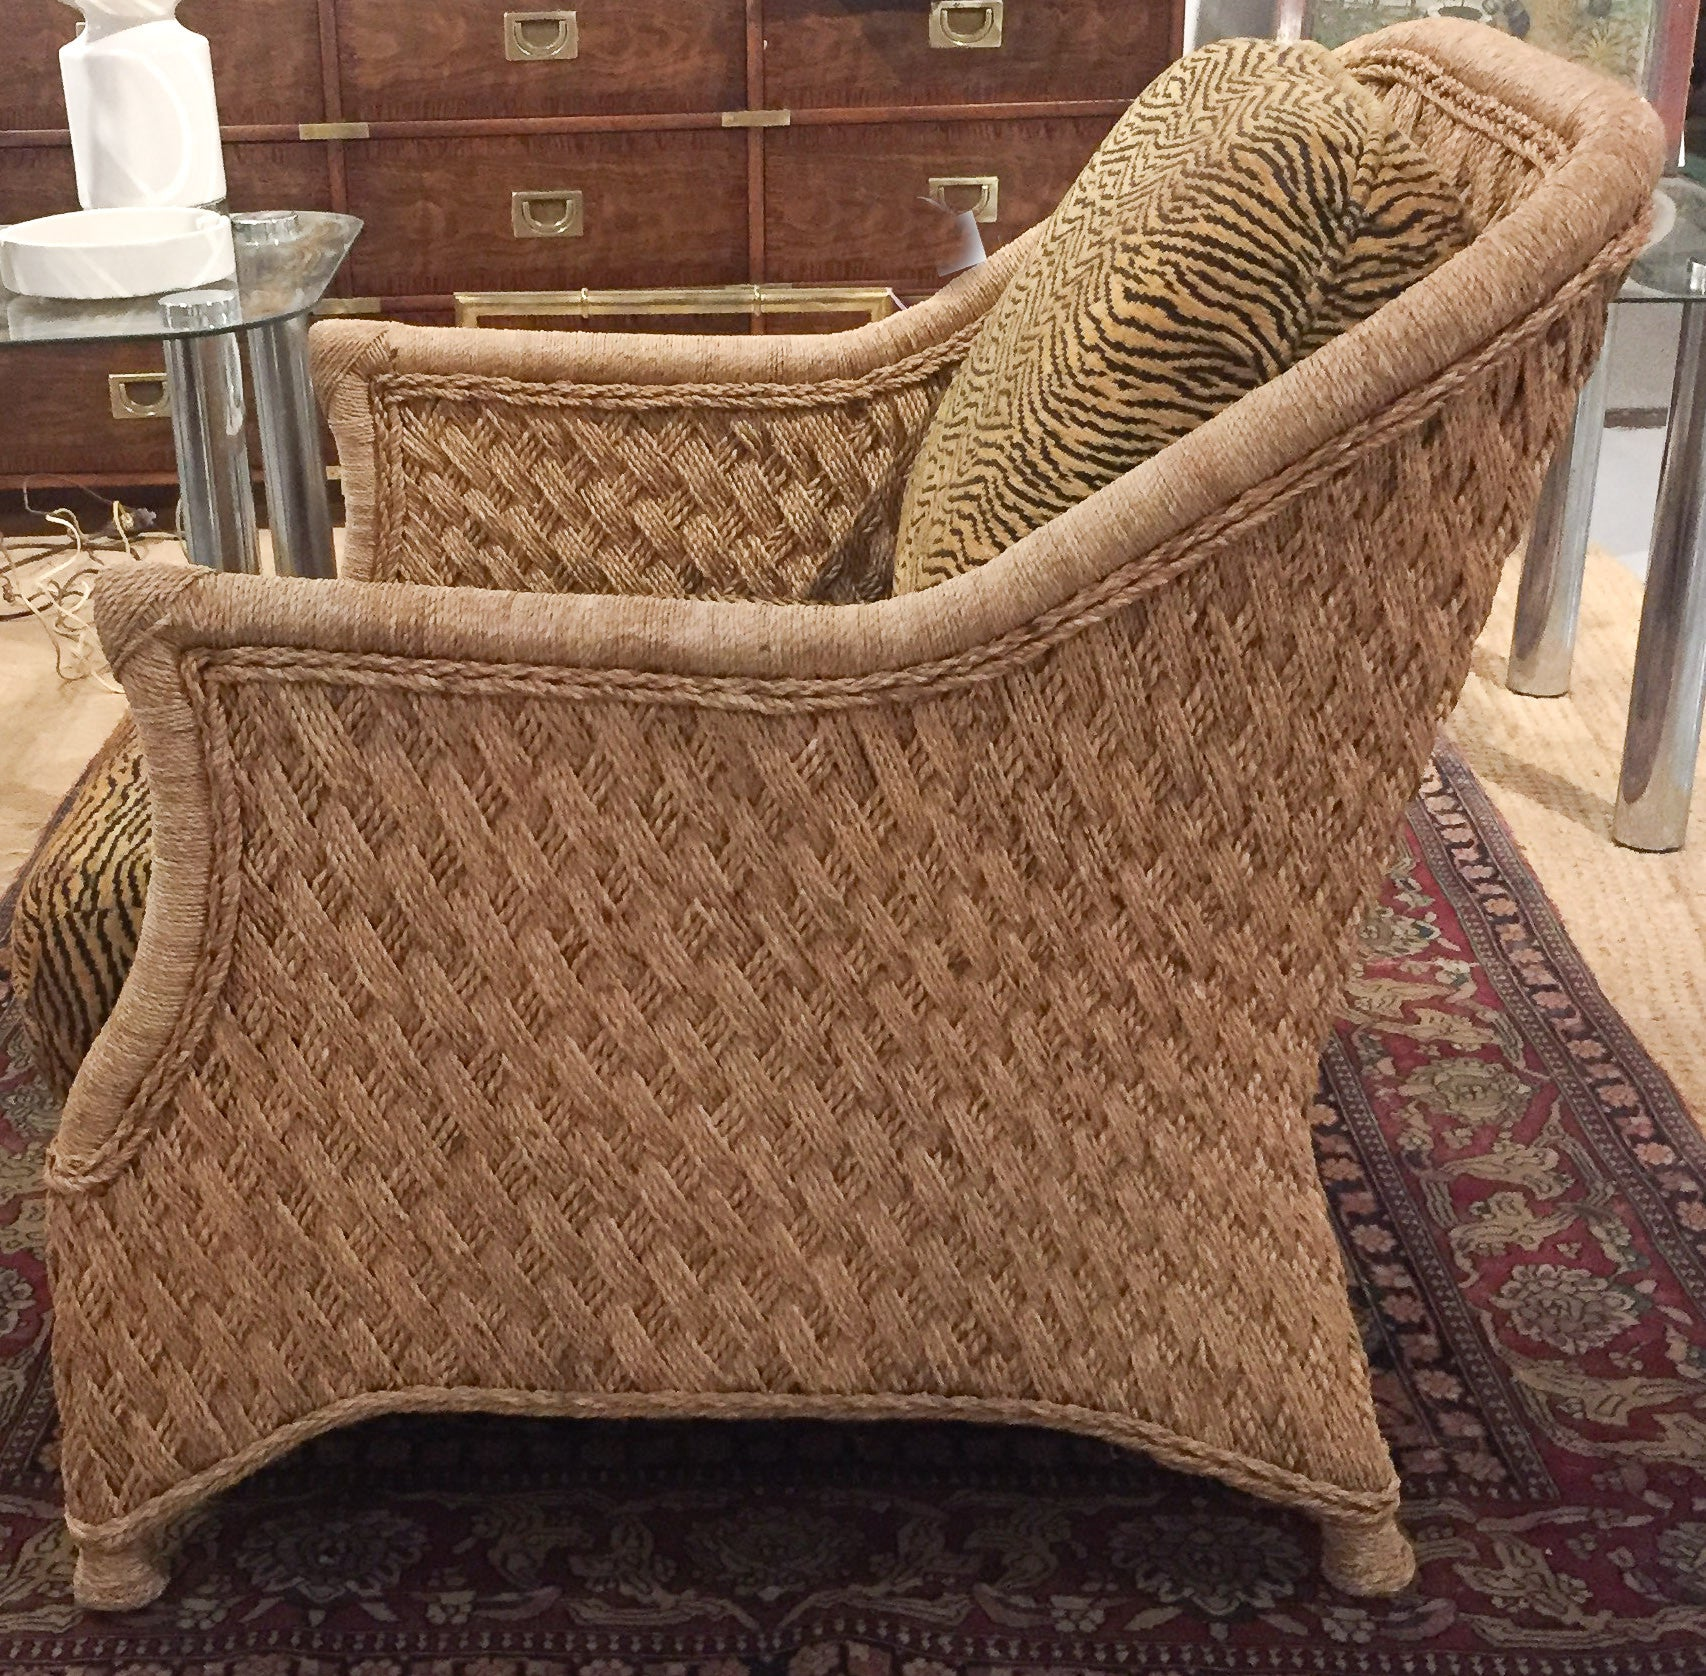 Mid Century Rope, Jute, Woven Rope Lounge Chair, Animal Print